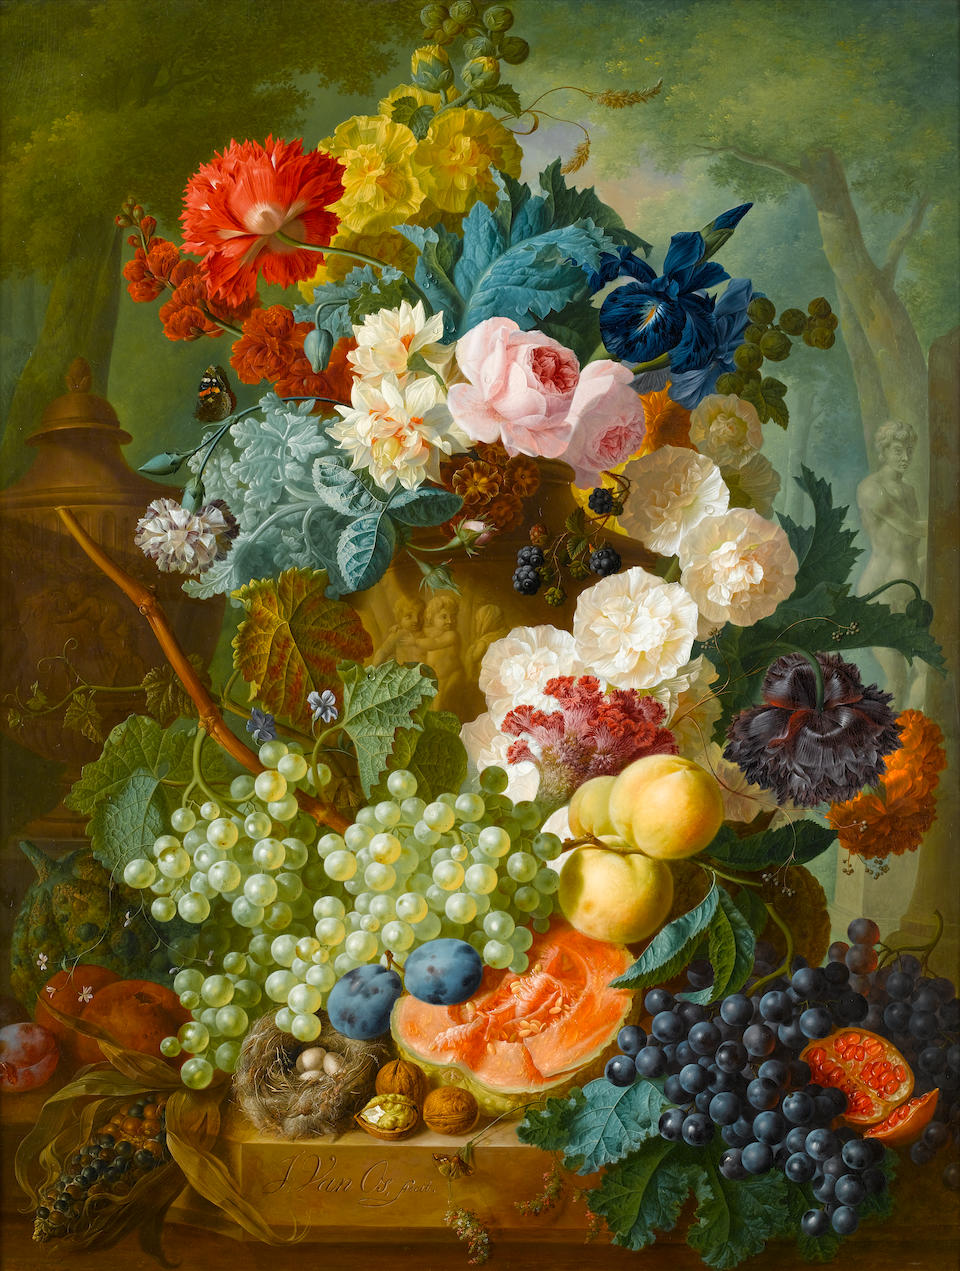 Jan van Os (Middelharnis 1744-1808 The Hague) Roses, irises, carnations and other flowers